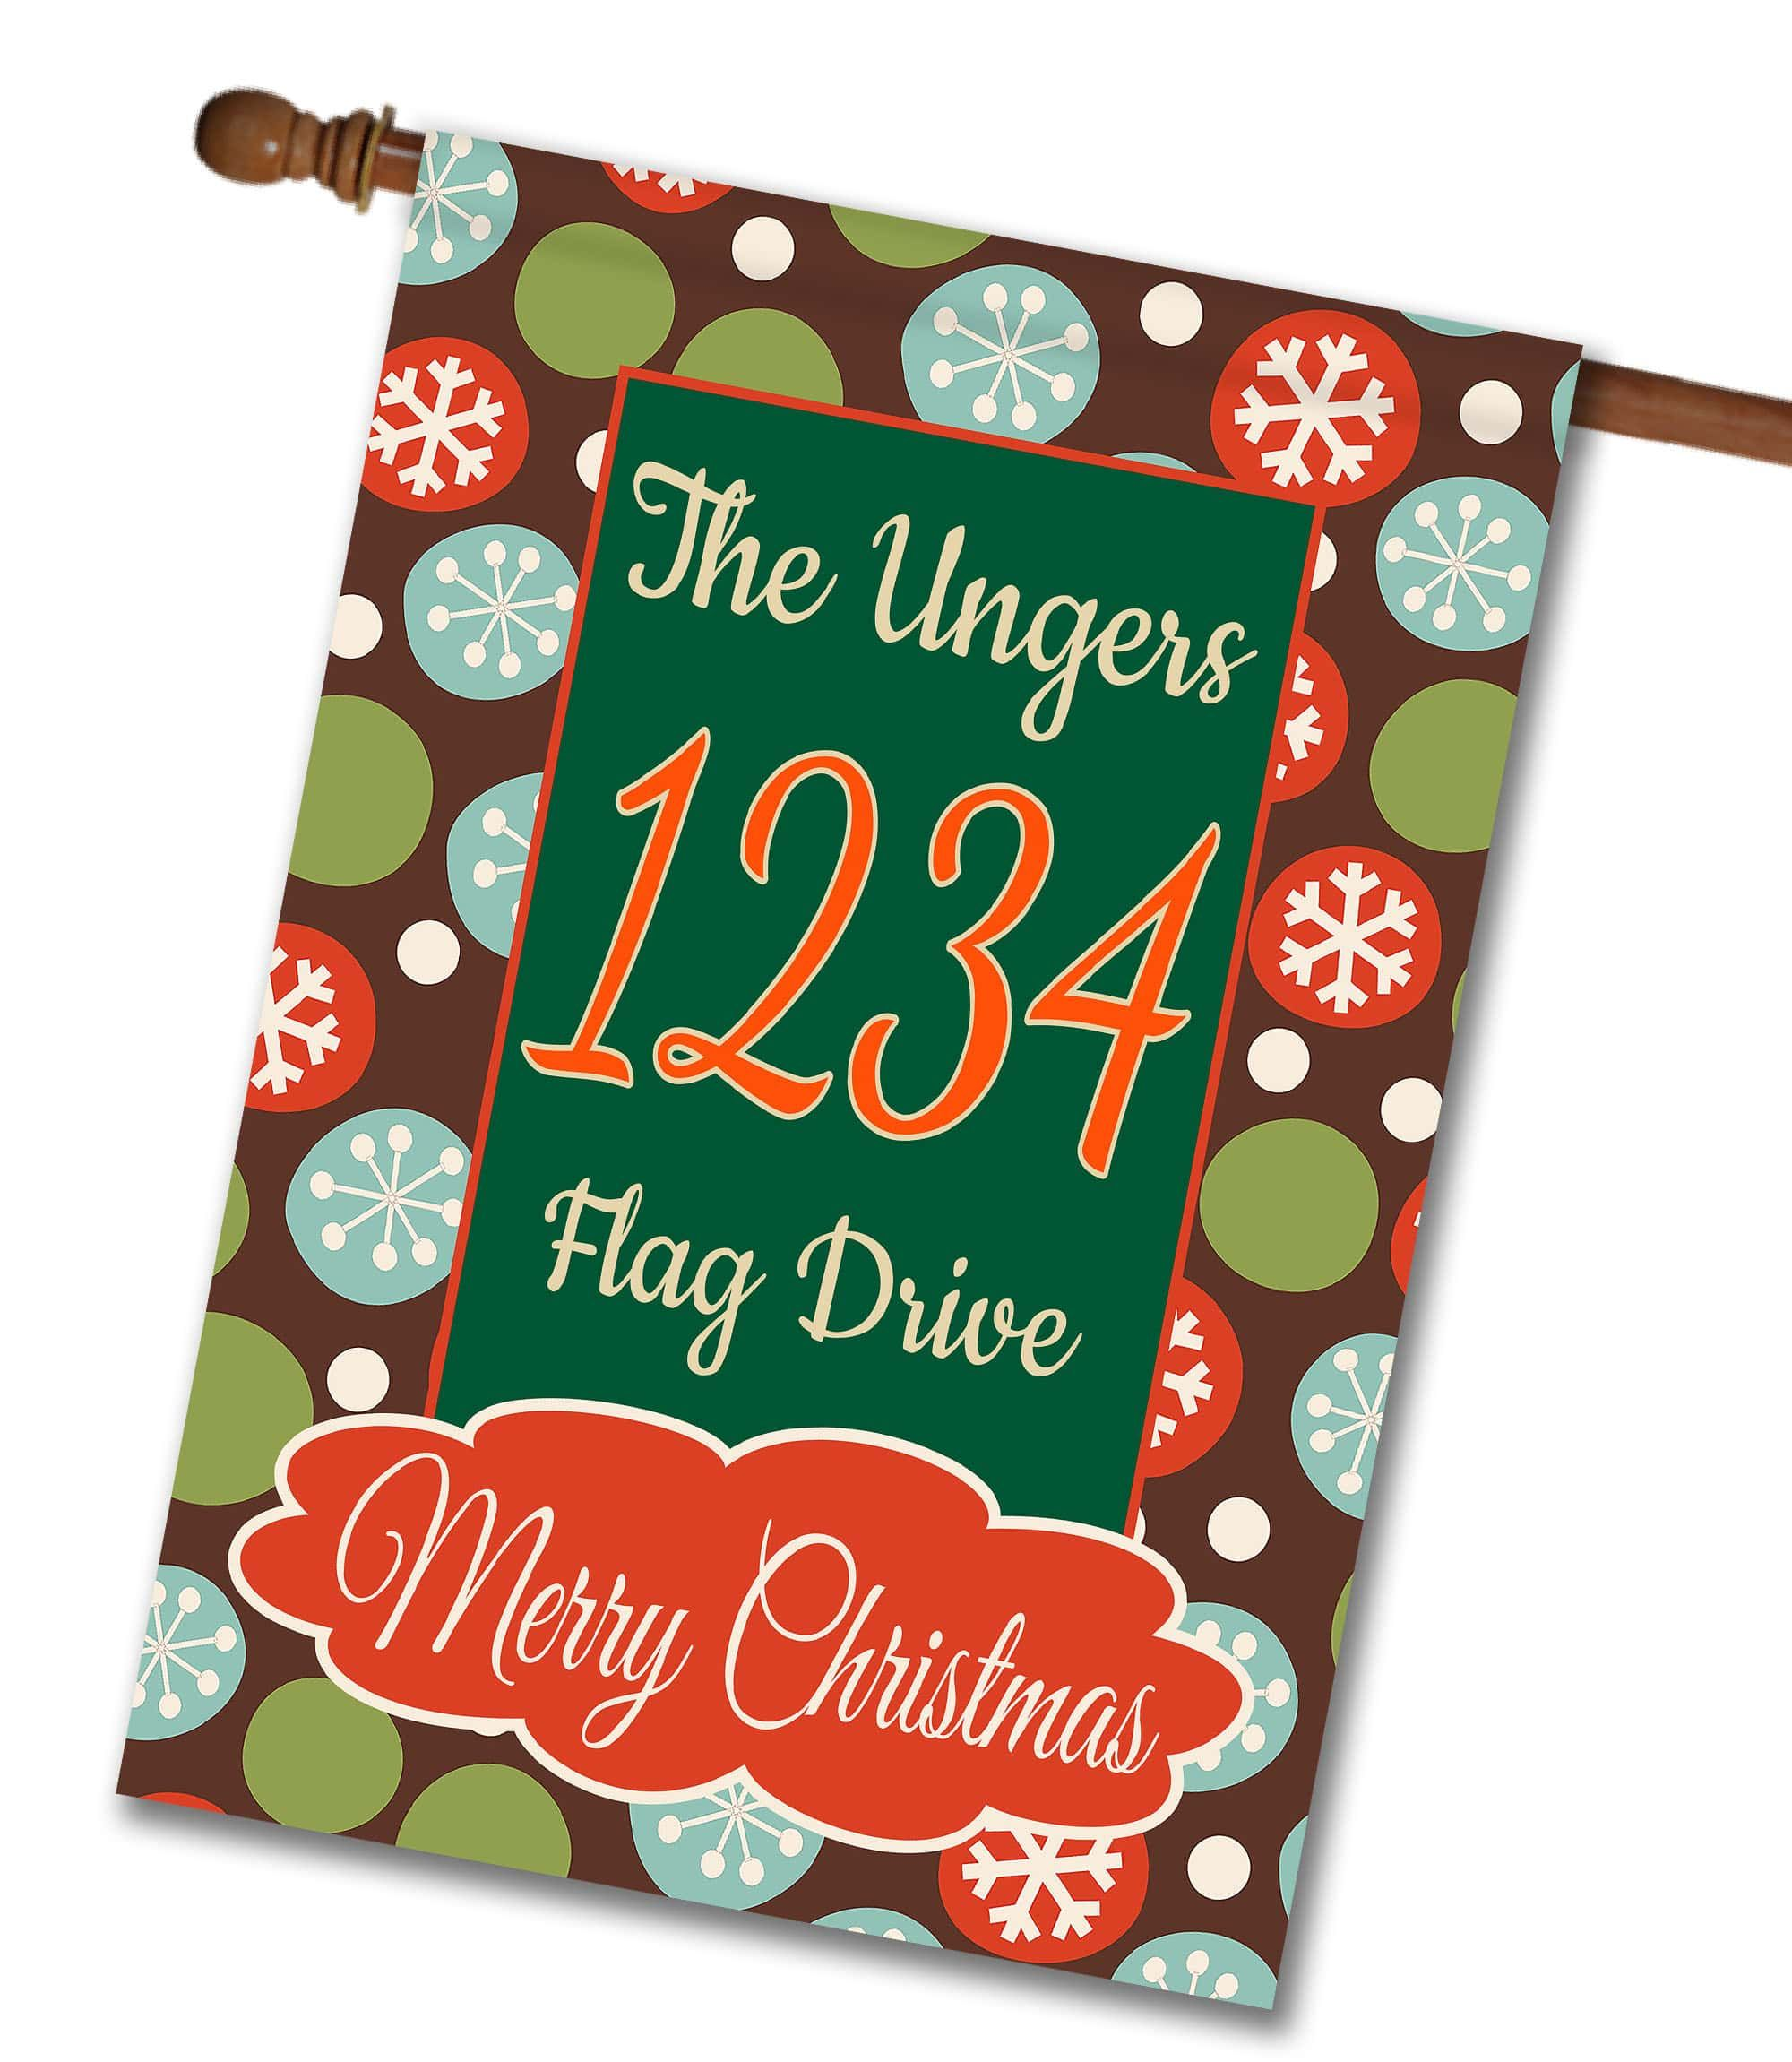 """Merry Christmas Snowflakes – Address House Flag Flag Size 28"""" x 40"""" Flag stand sold separately Proudly Printed in the USA Vibrant colors printed on a poly/cotton outdoor quality fabric. Digitally printed on both sides of the fabric. Two fabric options given at checkout."""